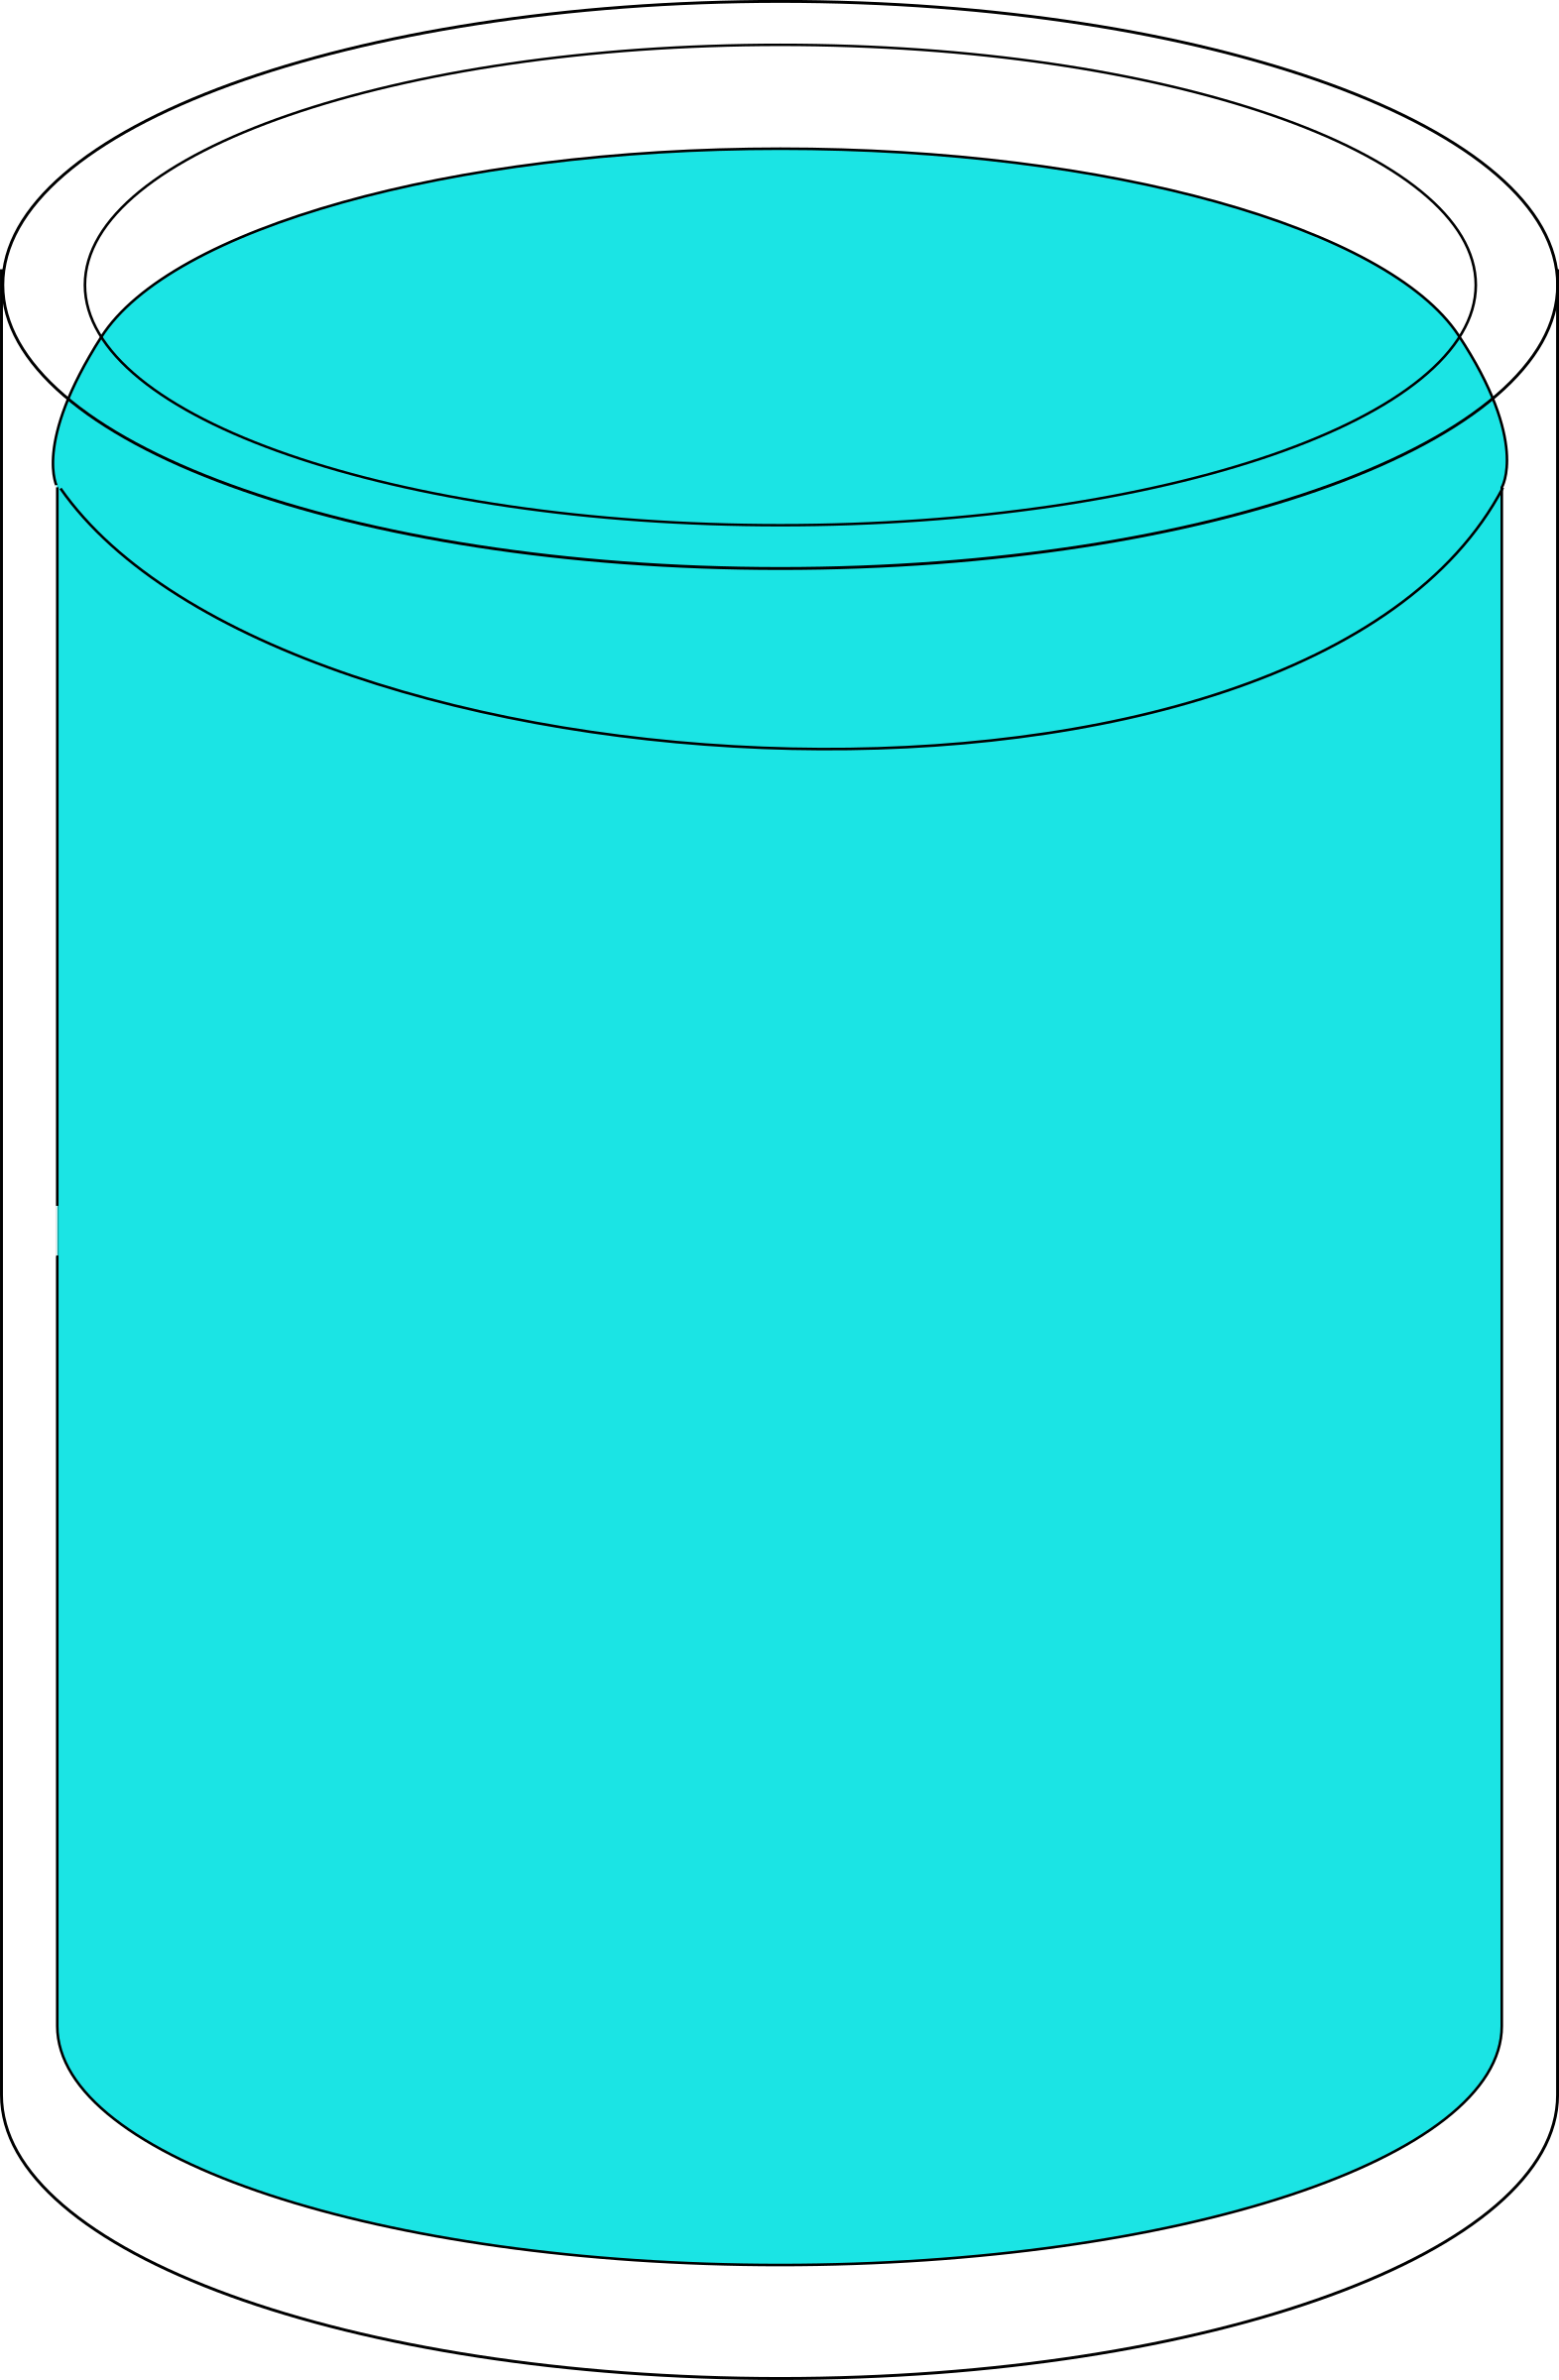 680 Glass Of Water free clipart.